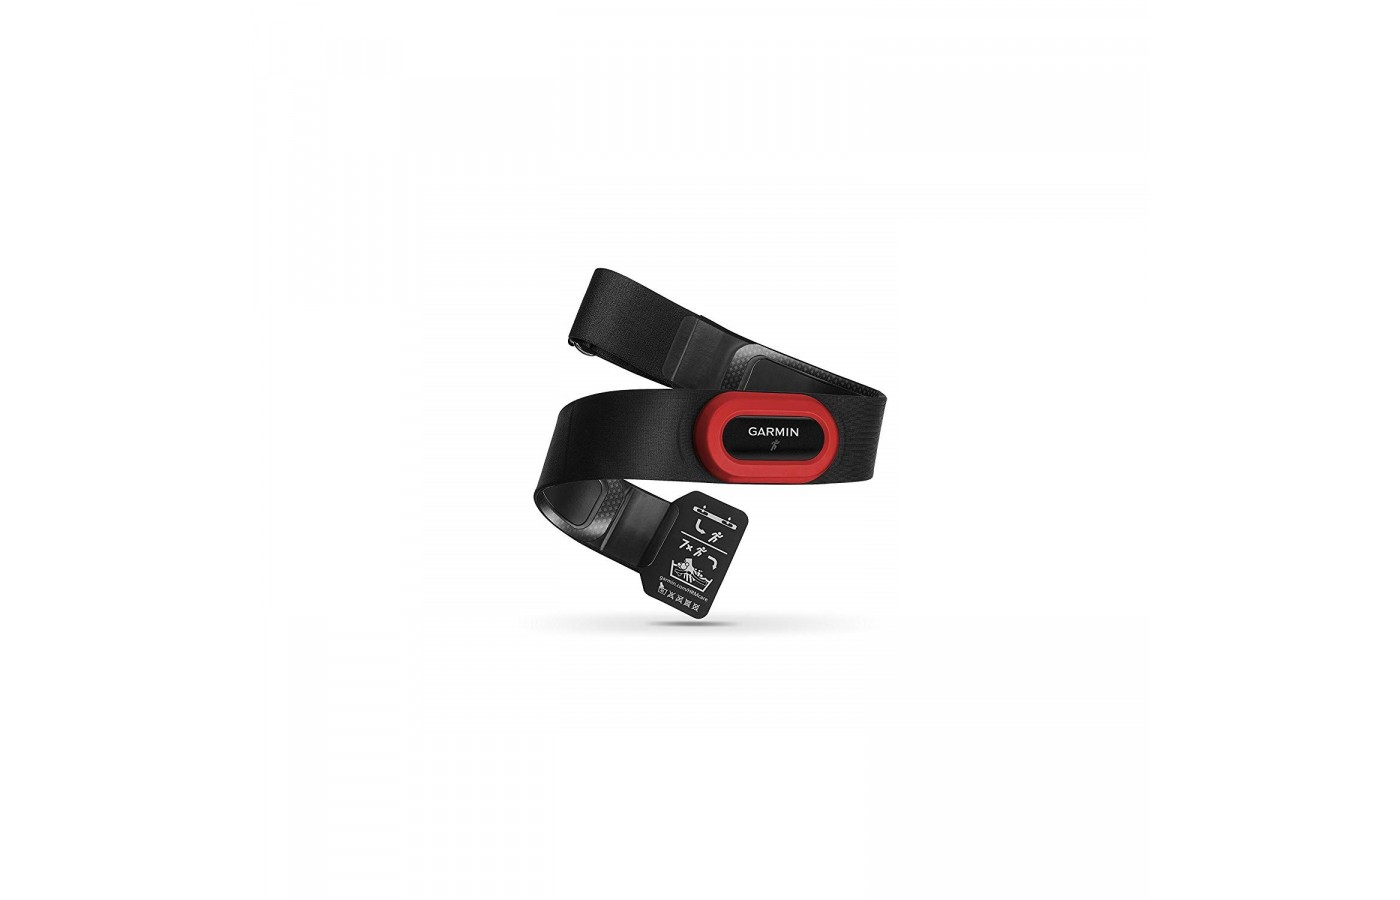 The Garmin Forerunner 735XT also offers a heart rate monitor band for even more reliable analytics.